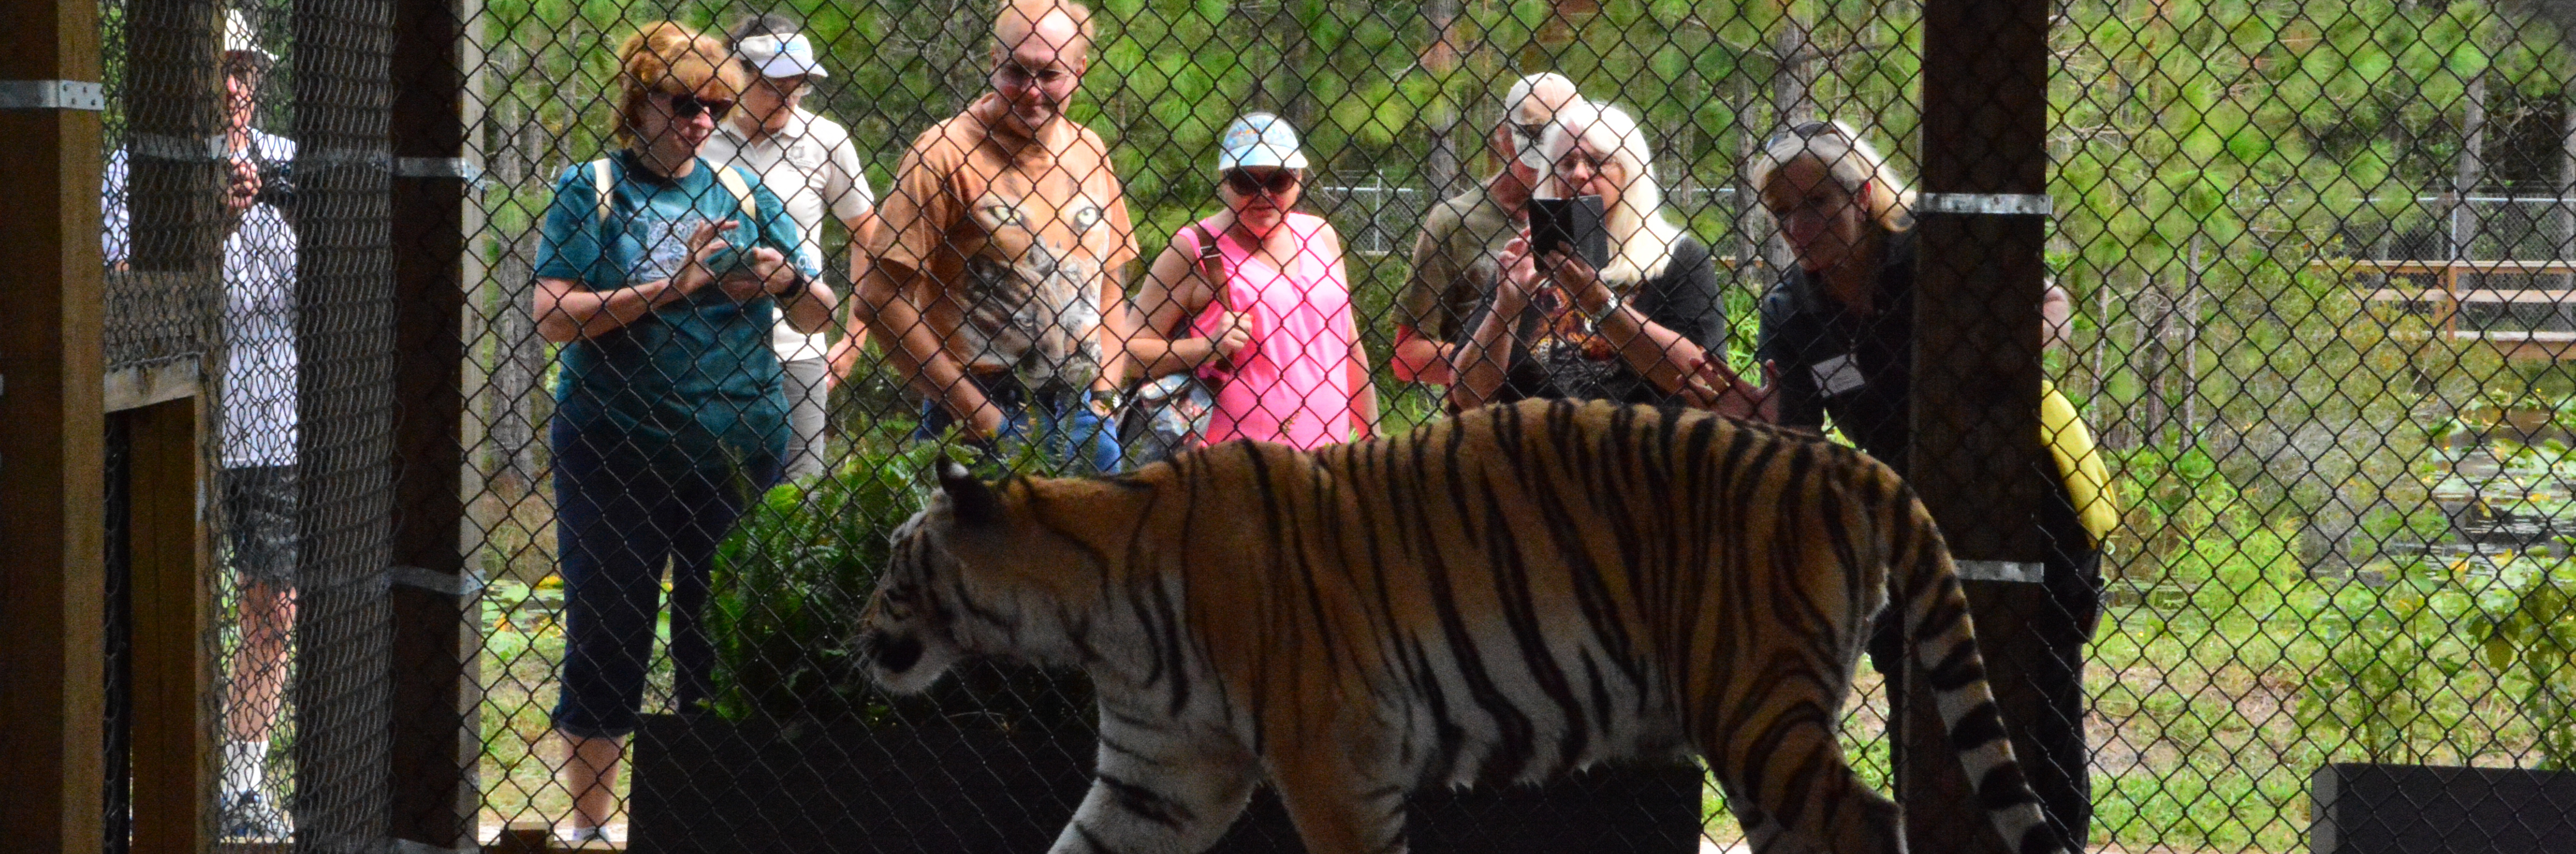 Central Florida Animal Reserve Tour